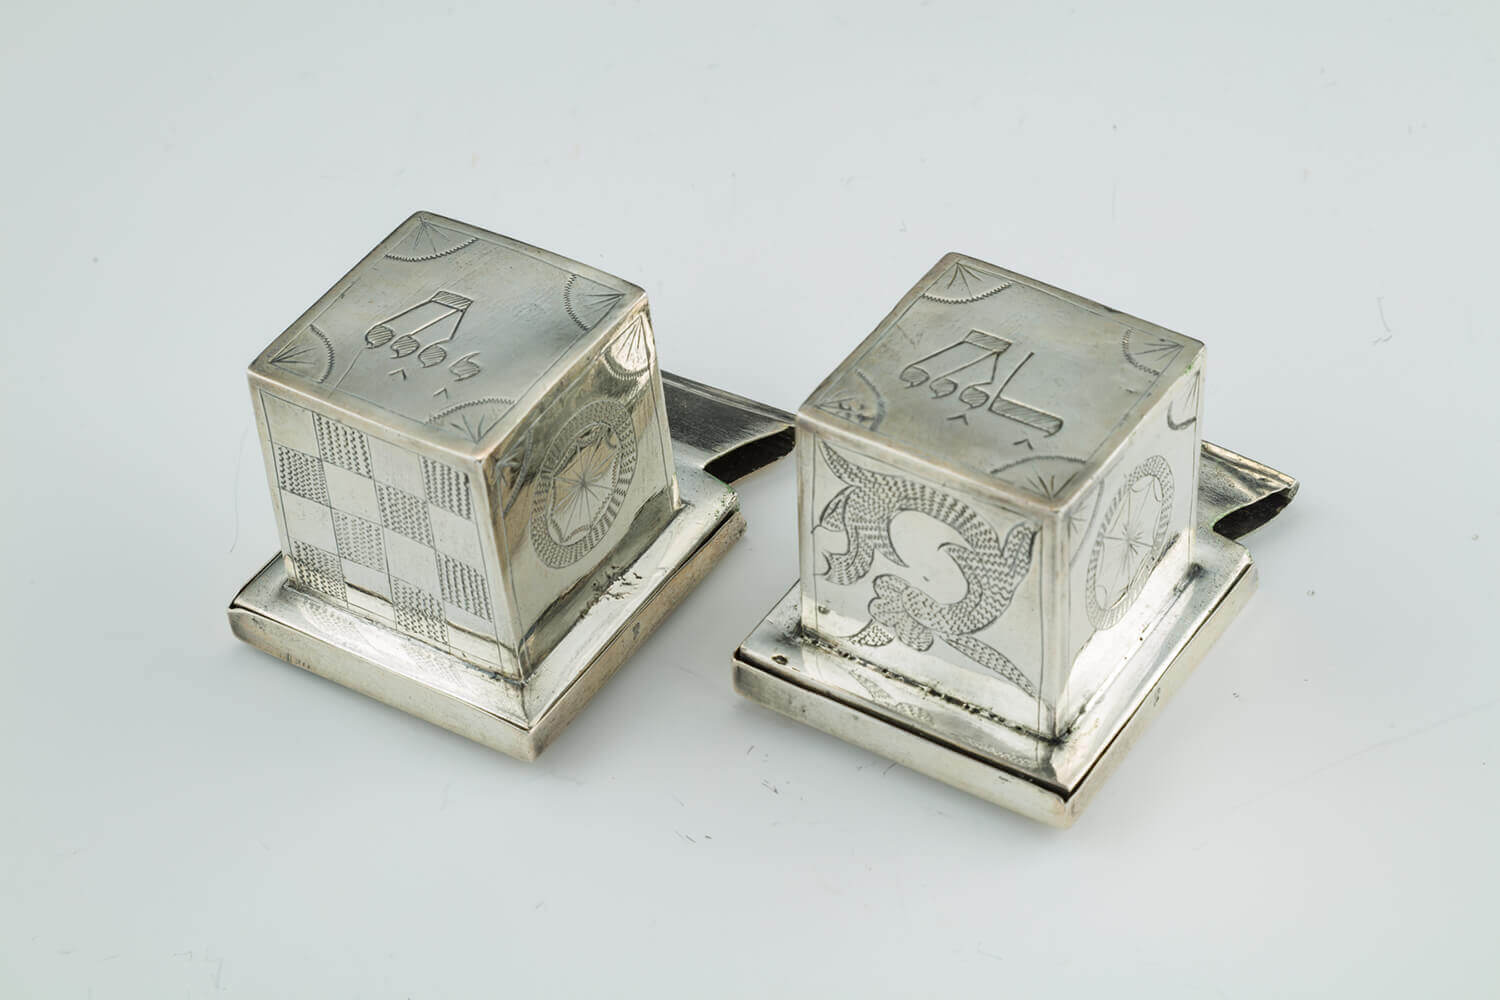 080. A RARE AND IMPORTANT PAIR OF SILVER TEFILLIN CASES